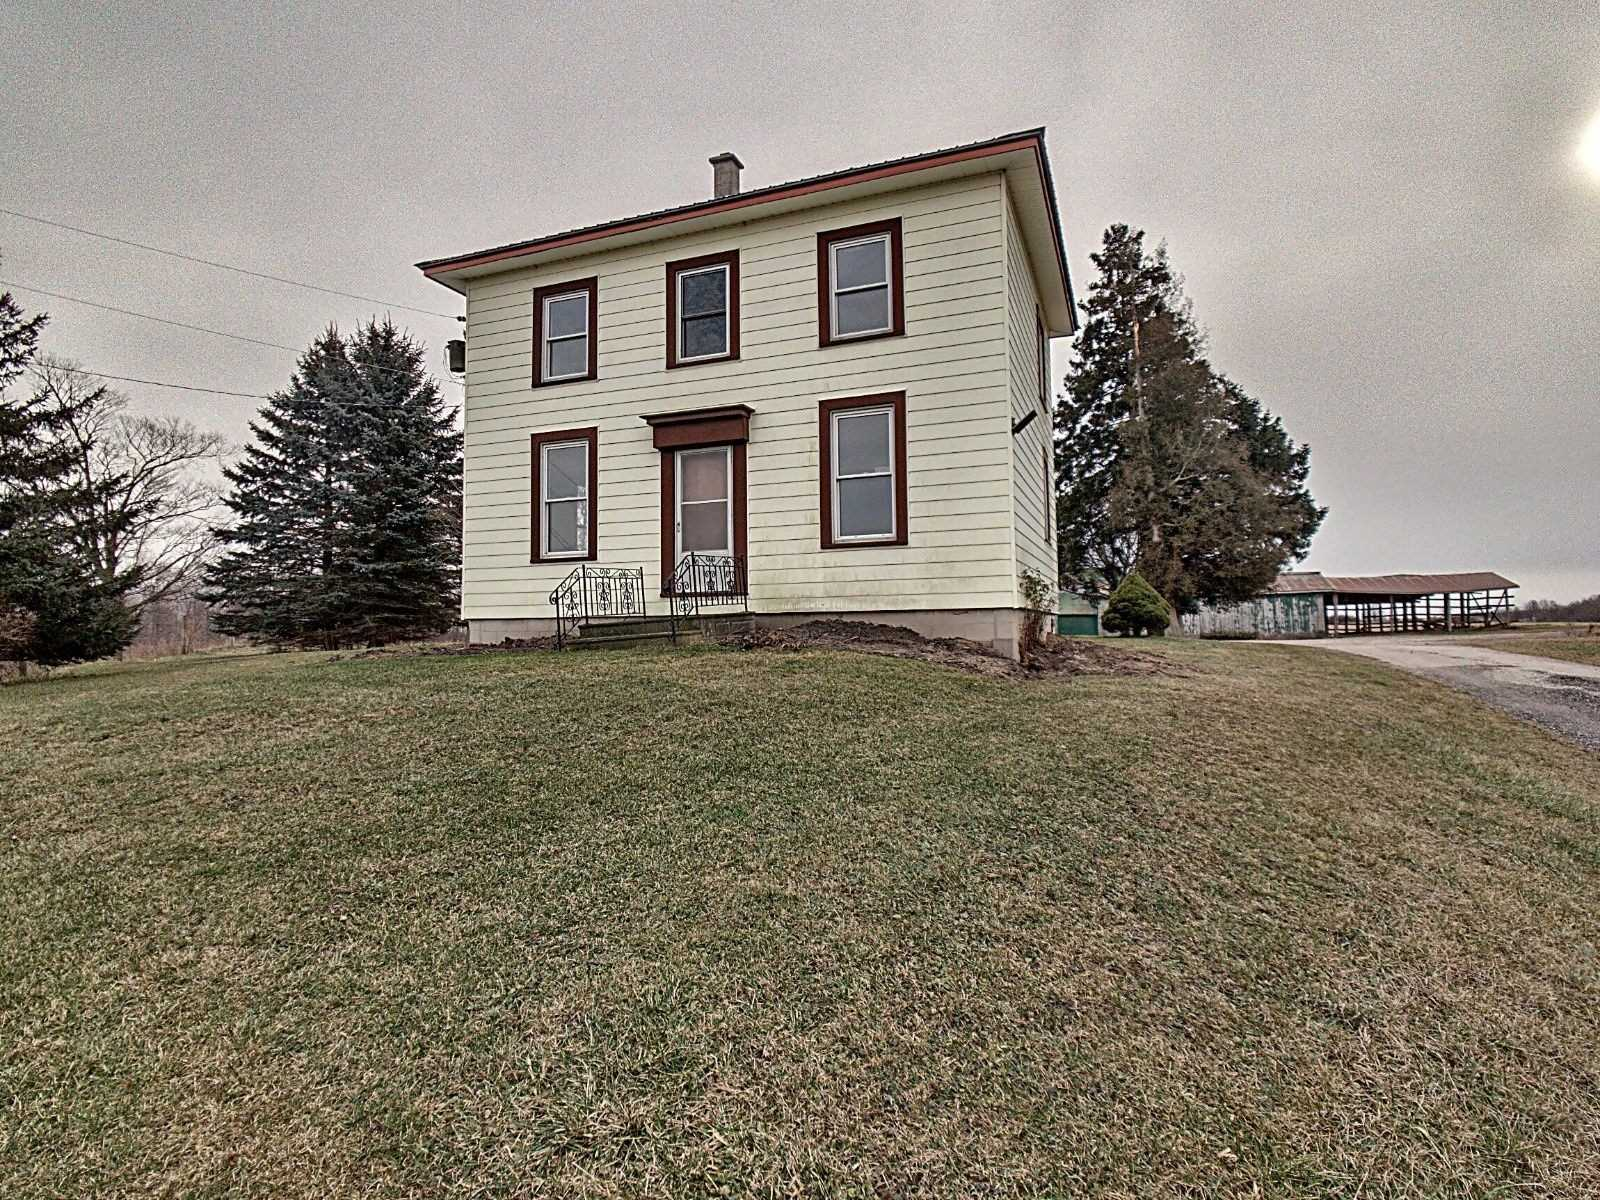 pictures of house for sale MLS: X5067338 located at 3961 Crampton Dr, Thames Centre N0L1V0